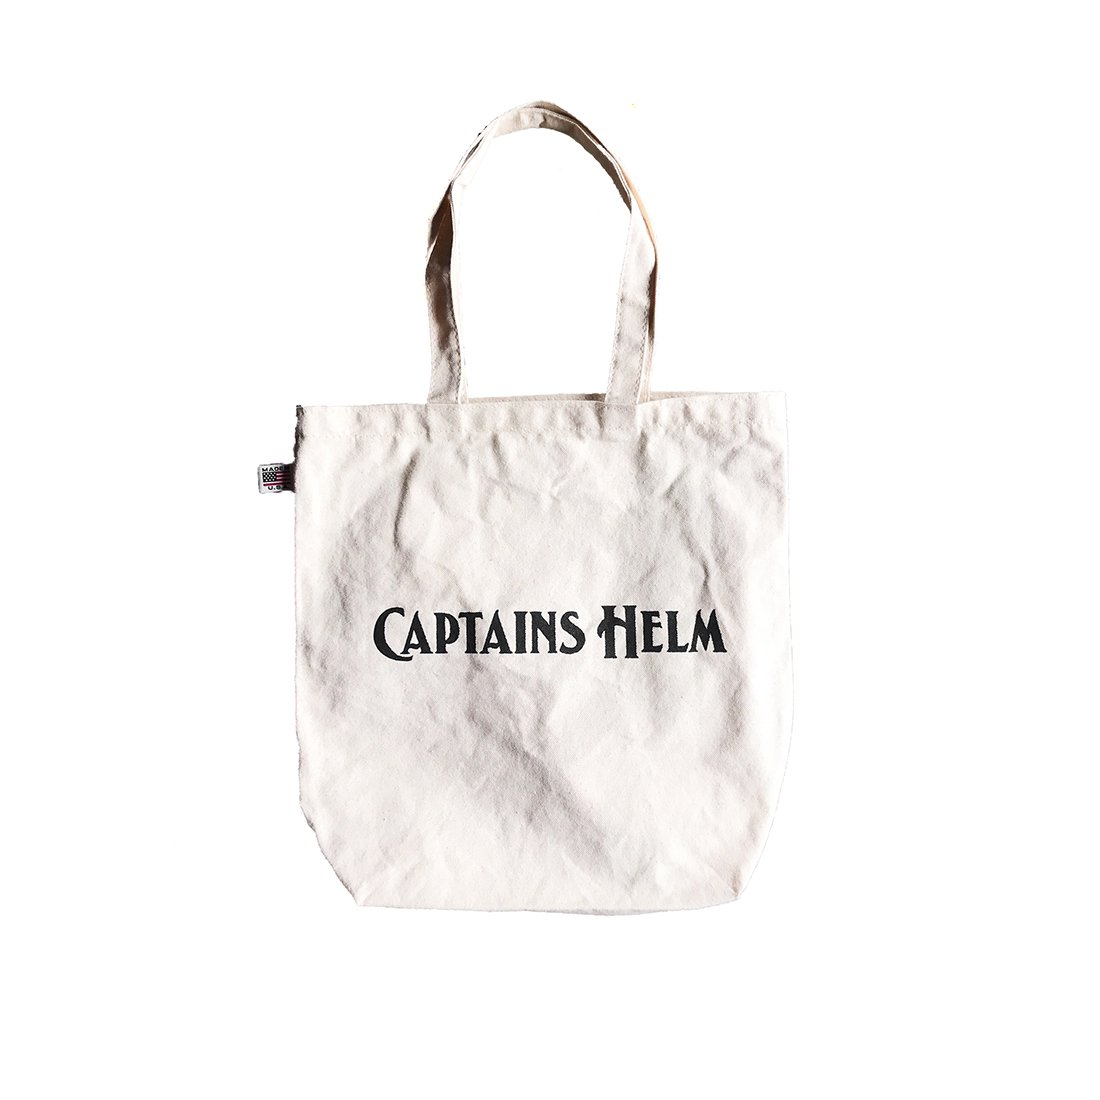 CAPTAINS HELM #USA MADE LOGO TOTE